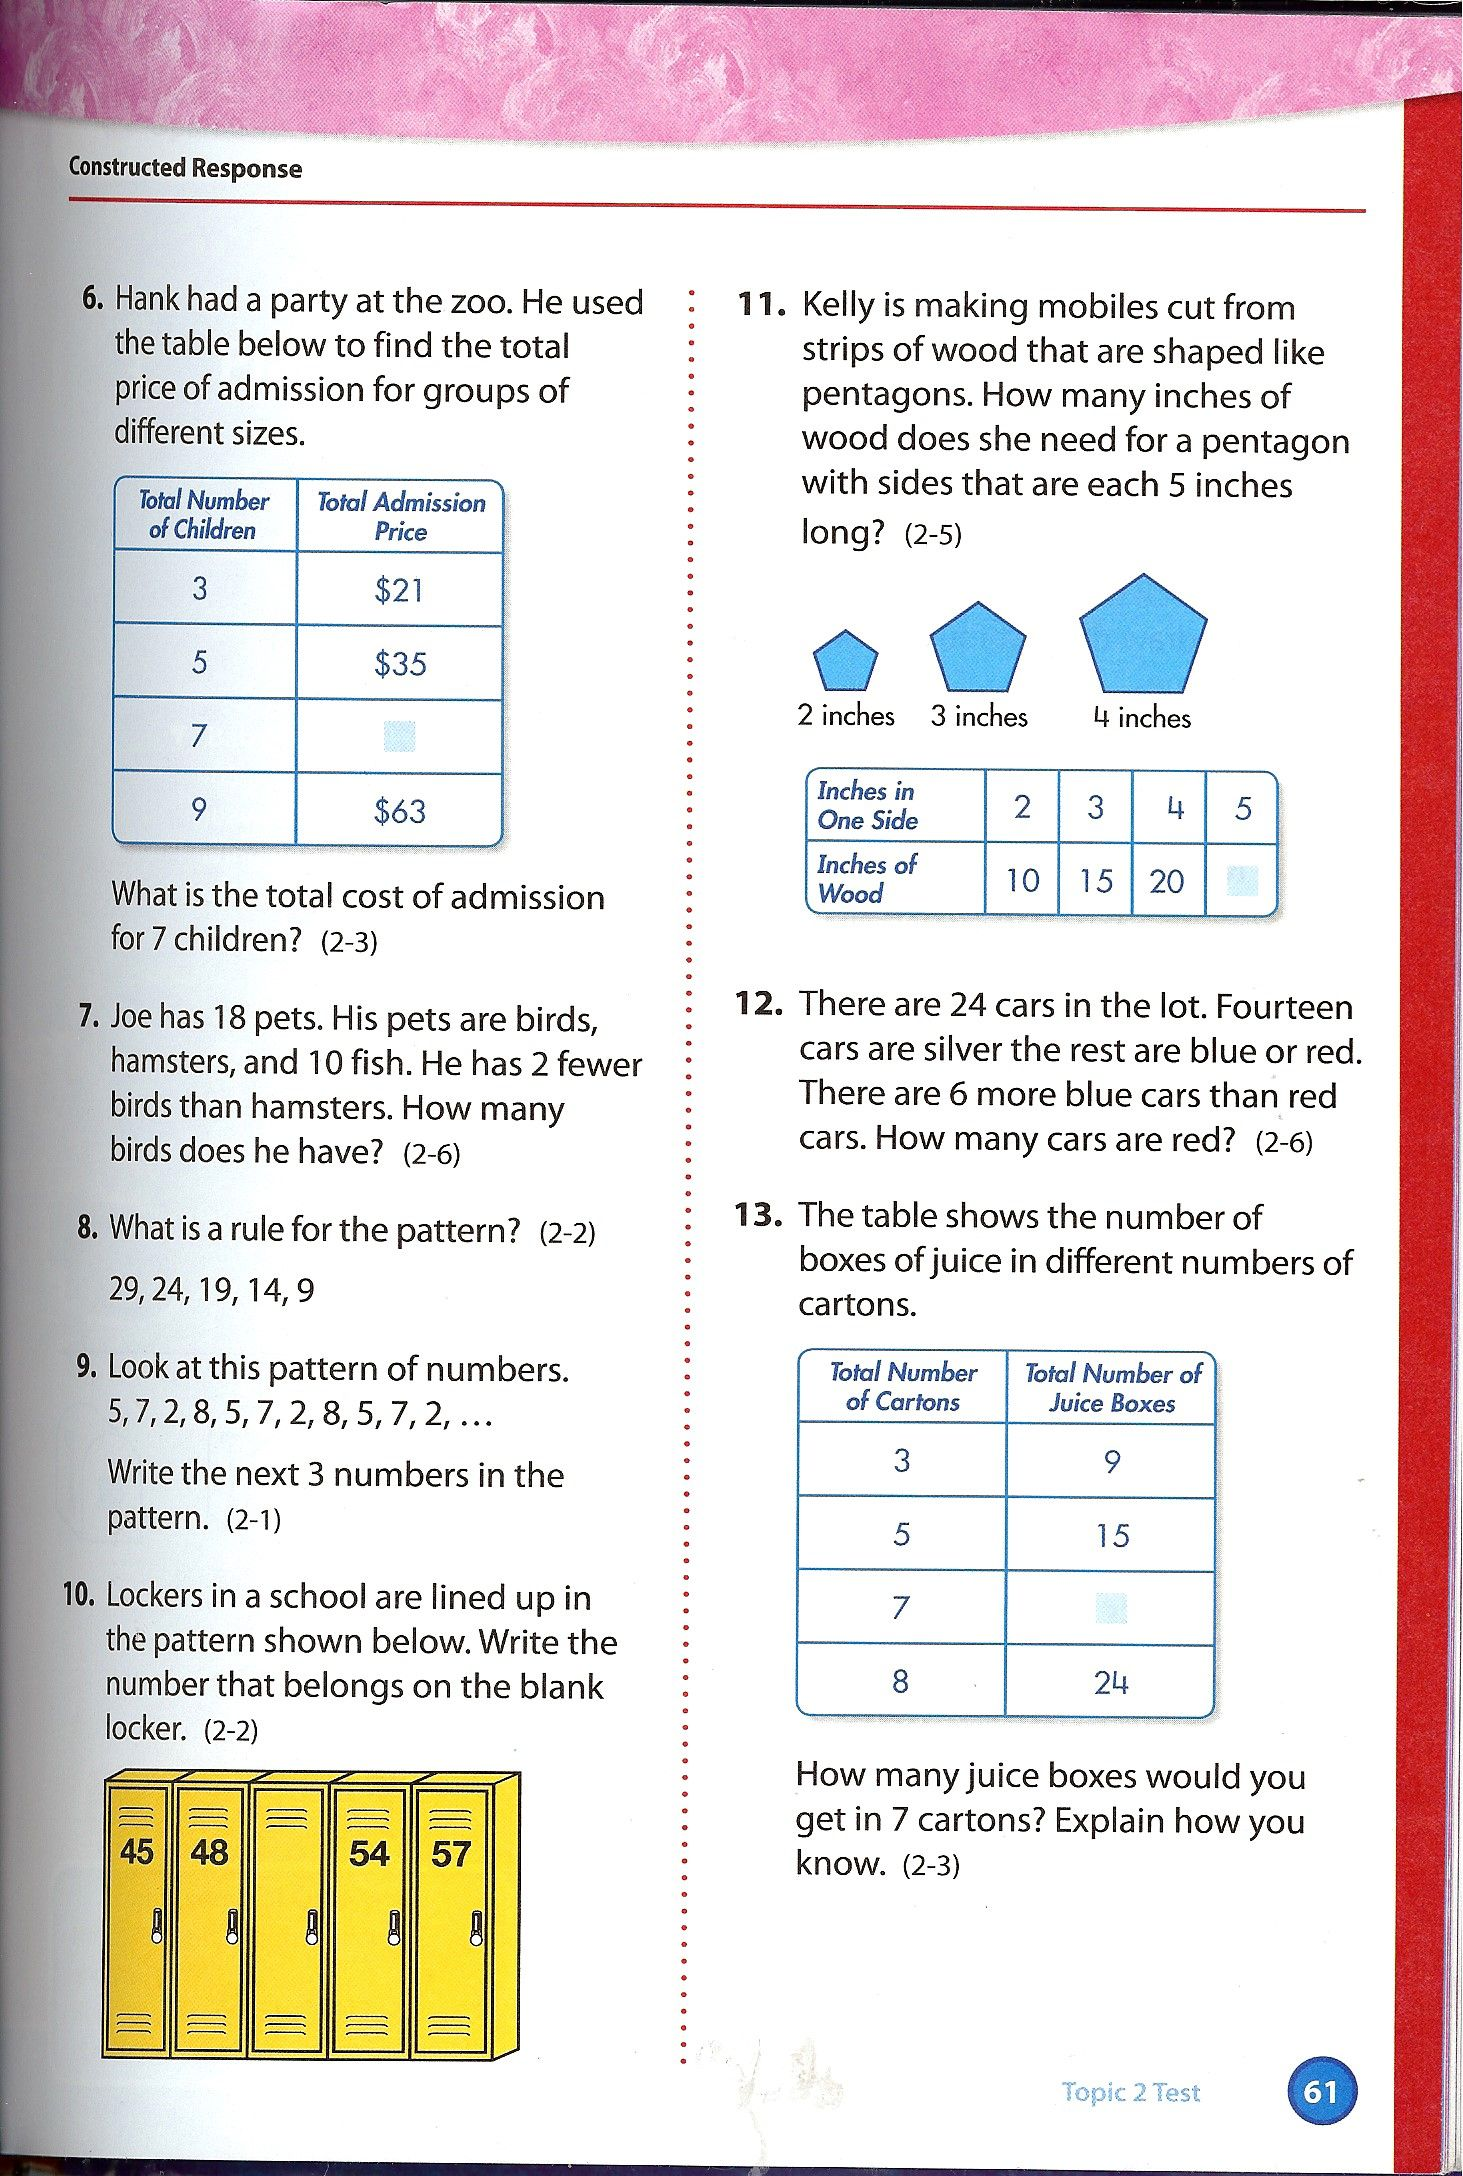 image relating to 5th Grade Math Test Printable named Pin upon Imagine 4th Quality Math